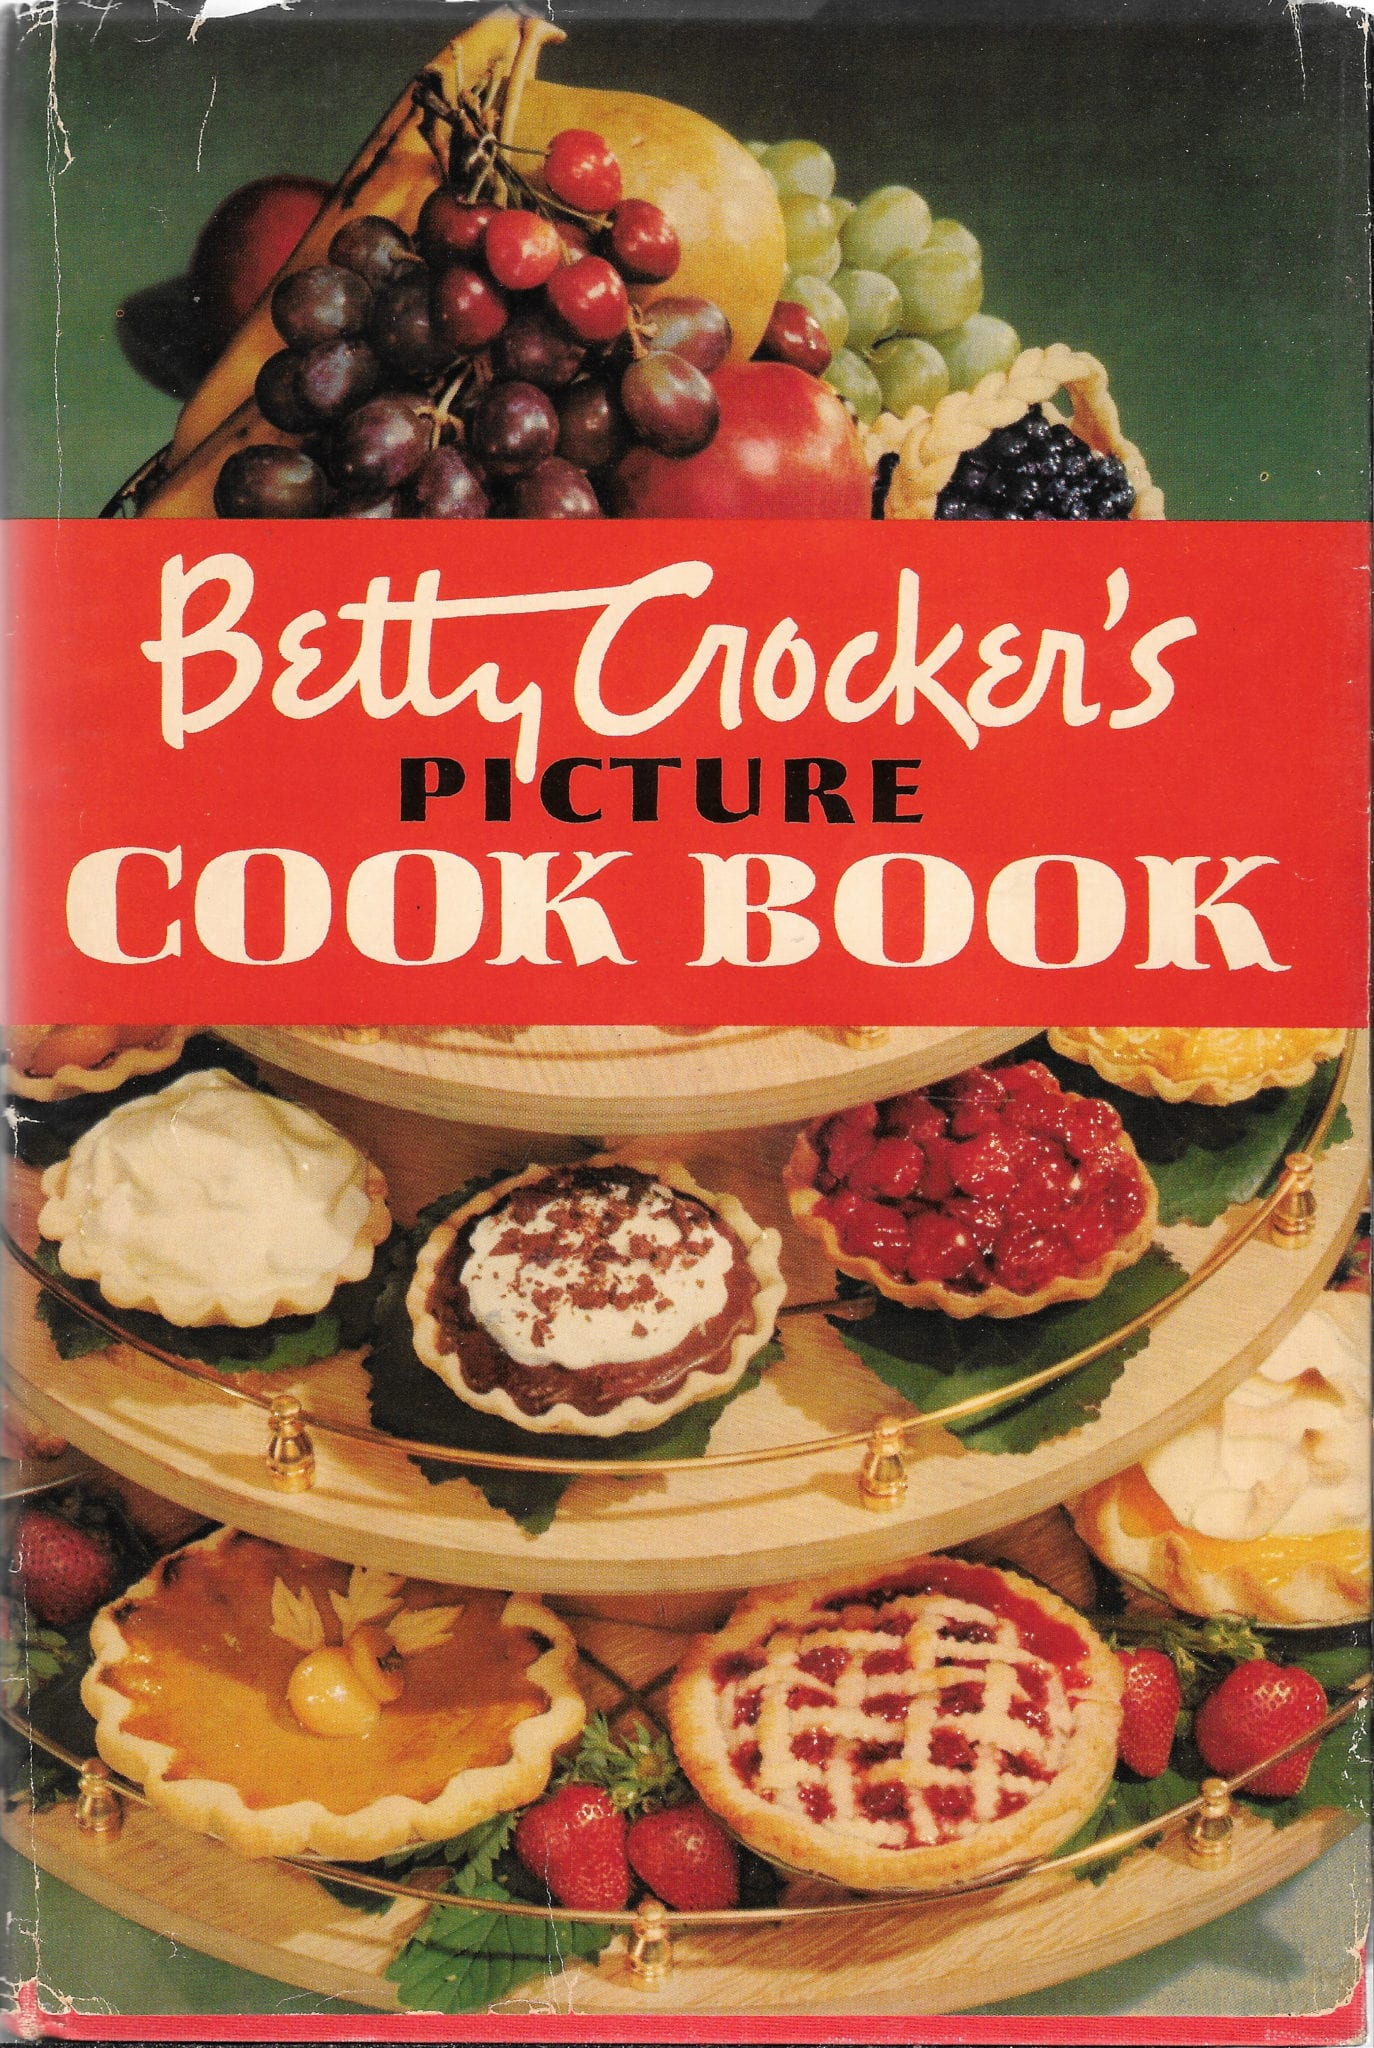 Crockers picture cook book 1950 first edition second printing betty crockers picture cook book 1950 first edition second printing forumfinder Image collections